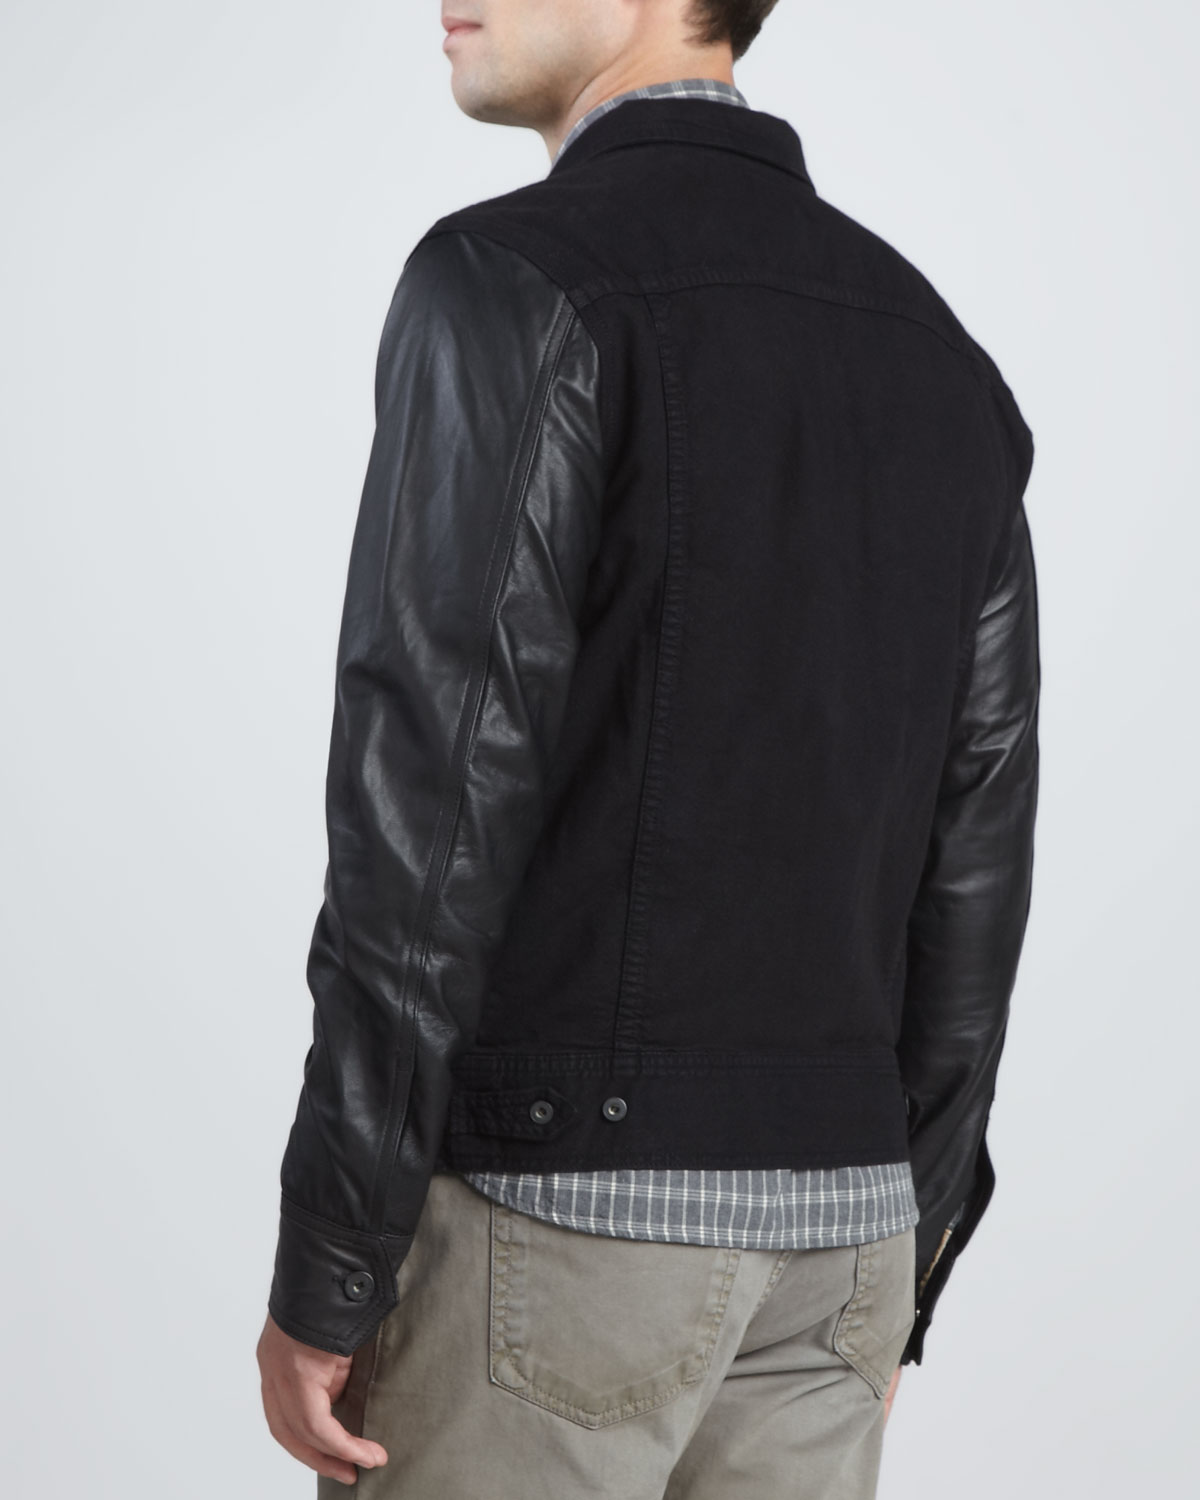 Womens jean jacket with leather sleeves